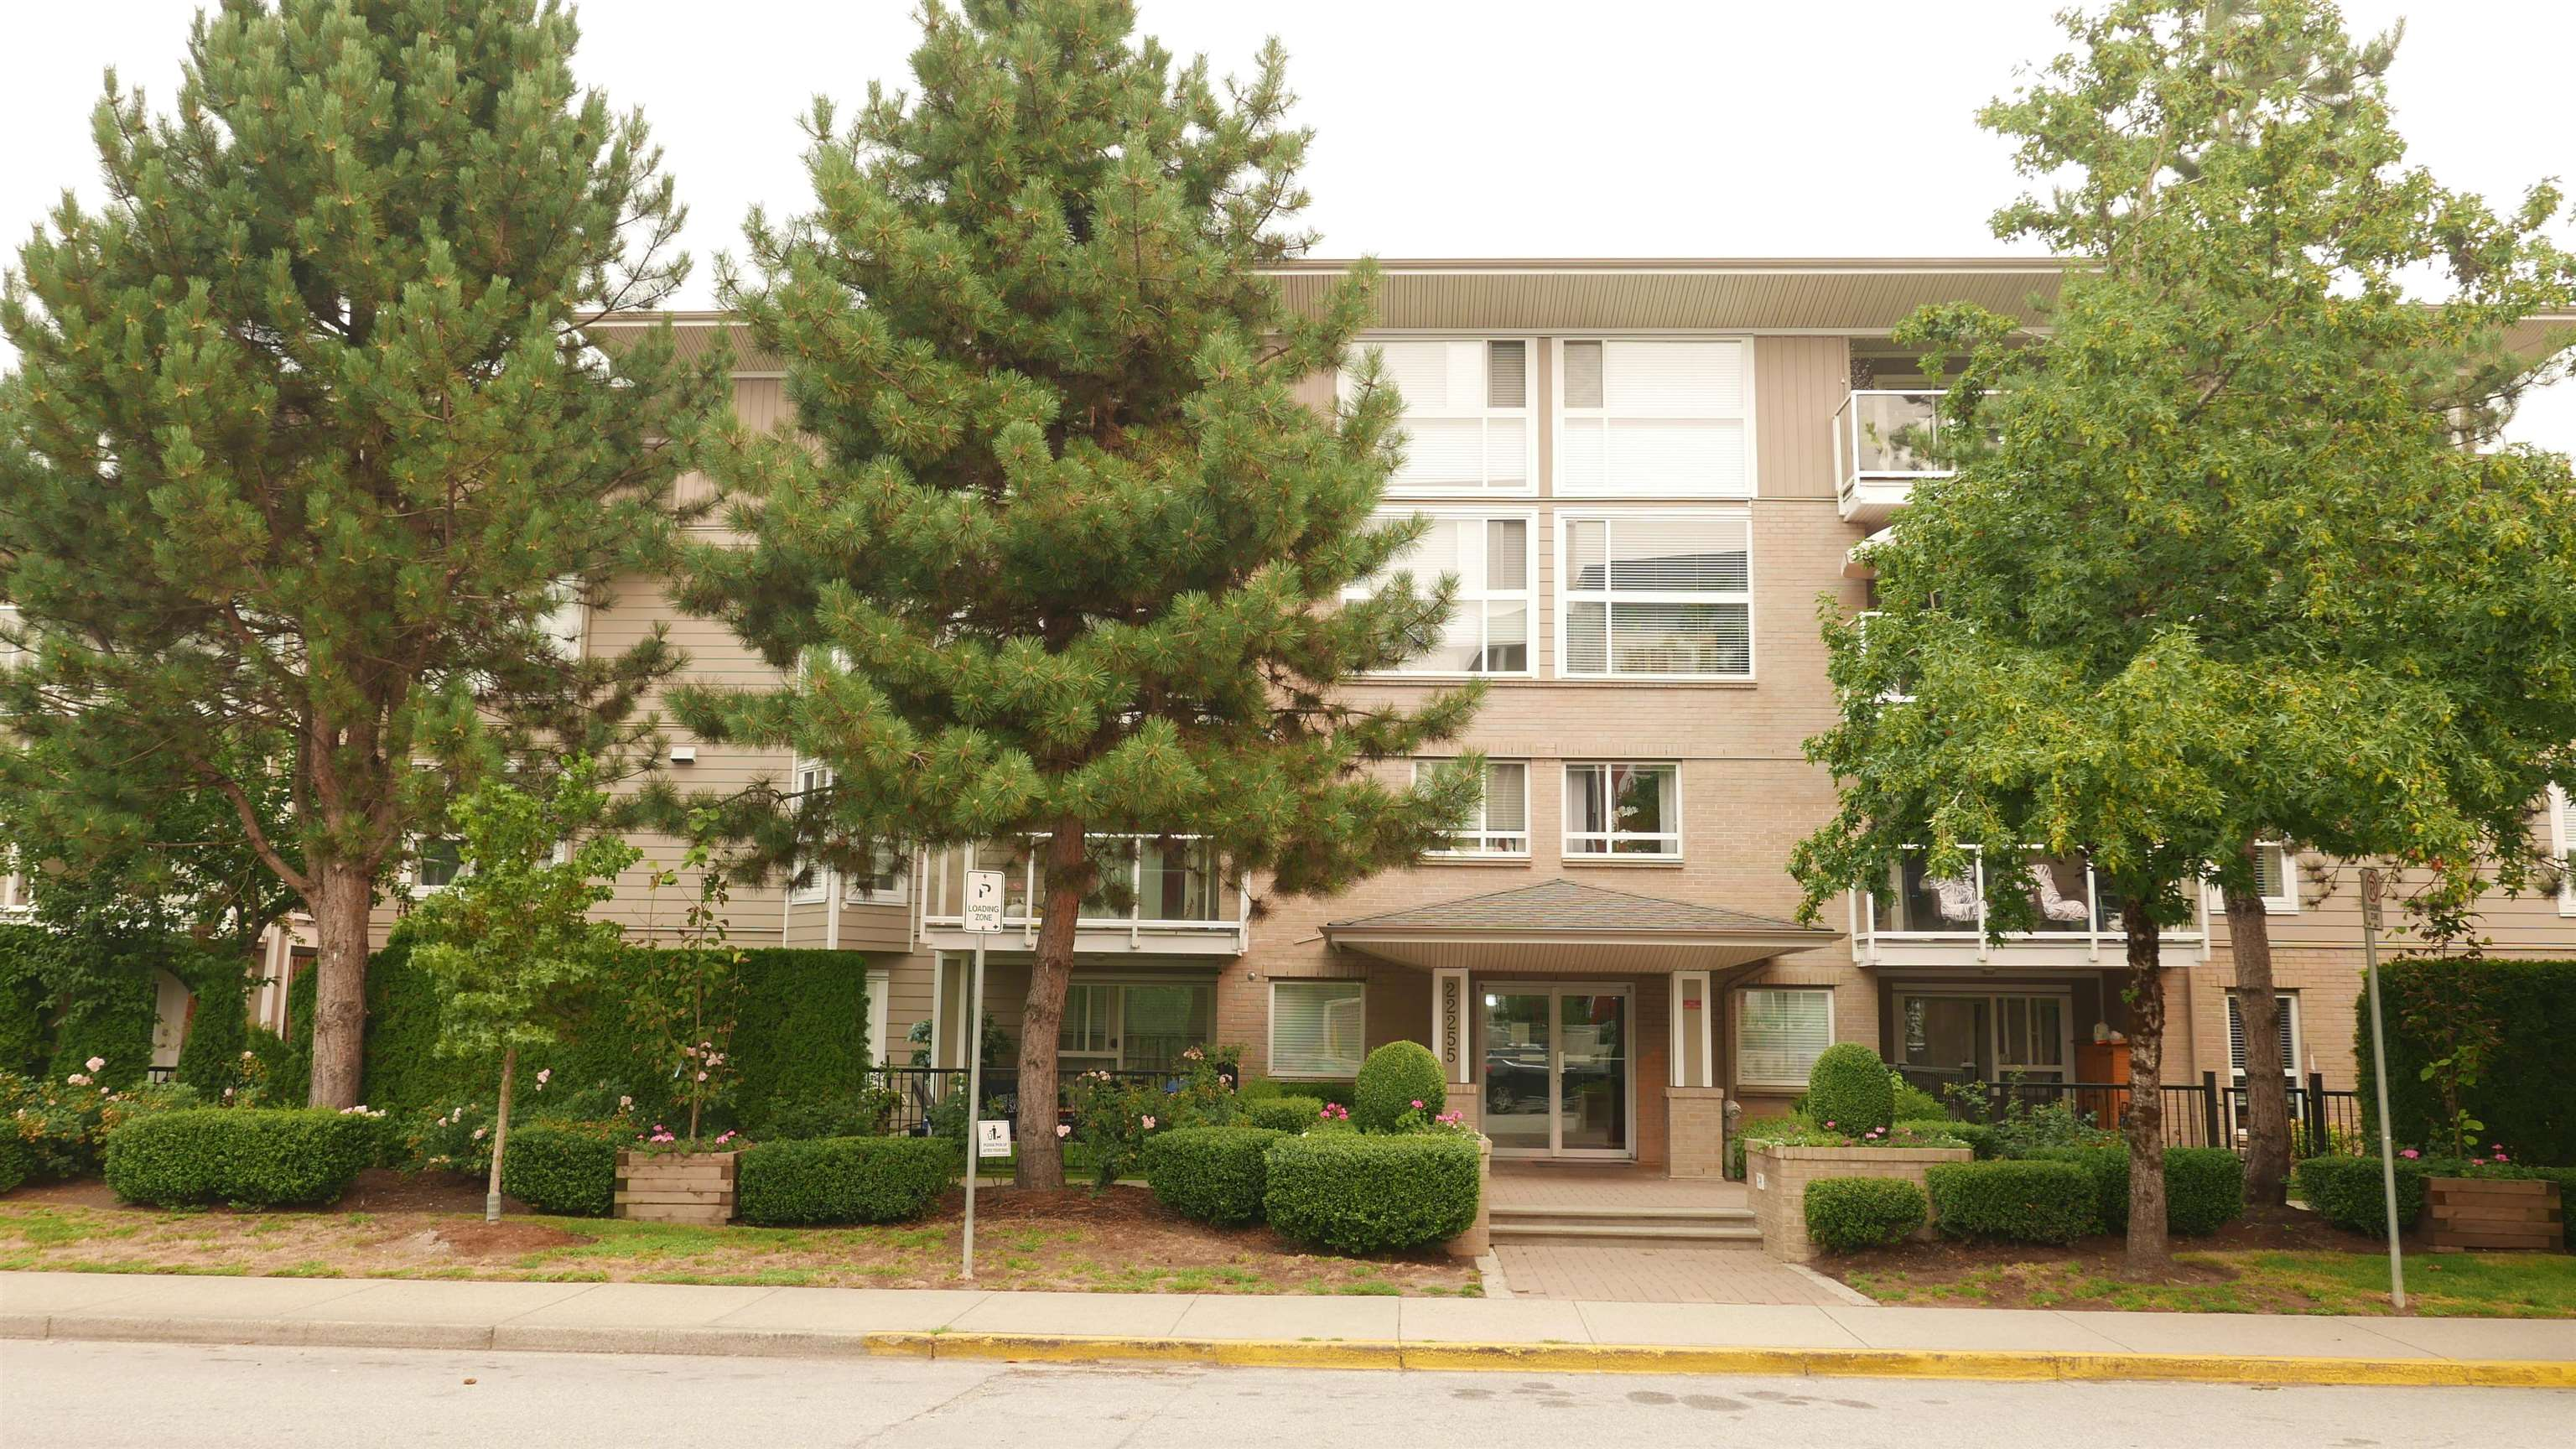 413 22255 122 AVENUE - West Central Apartment/Condo for sale, 3 Bedrooms (R2616226) - #1